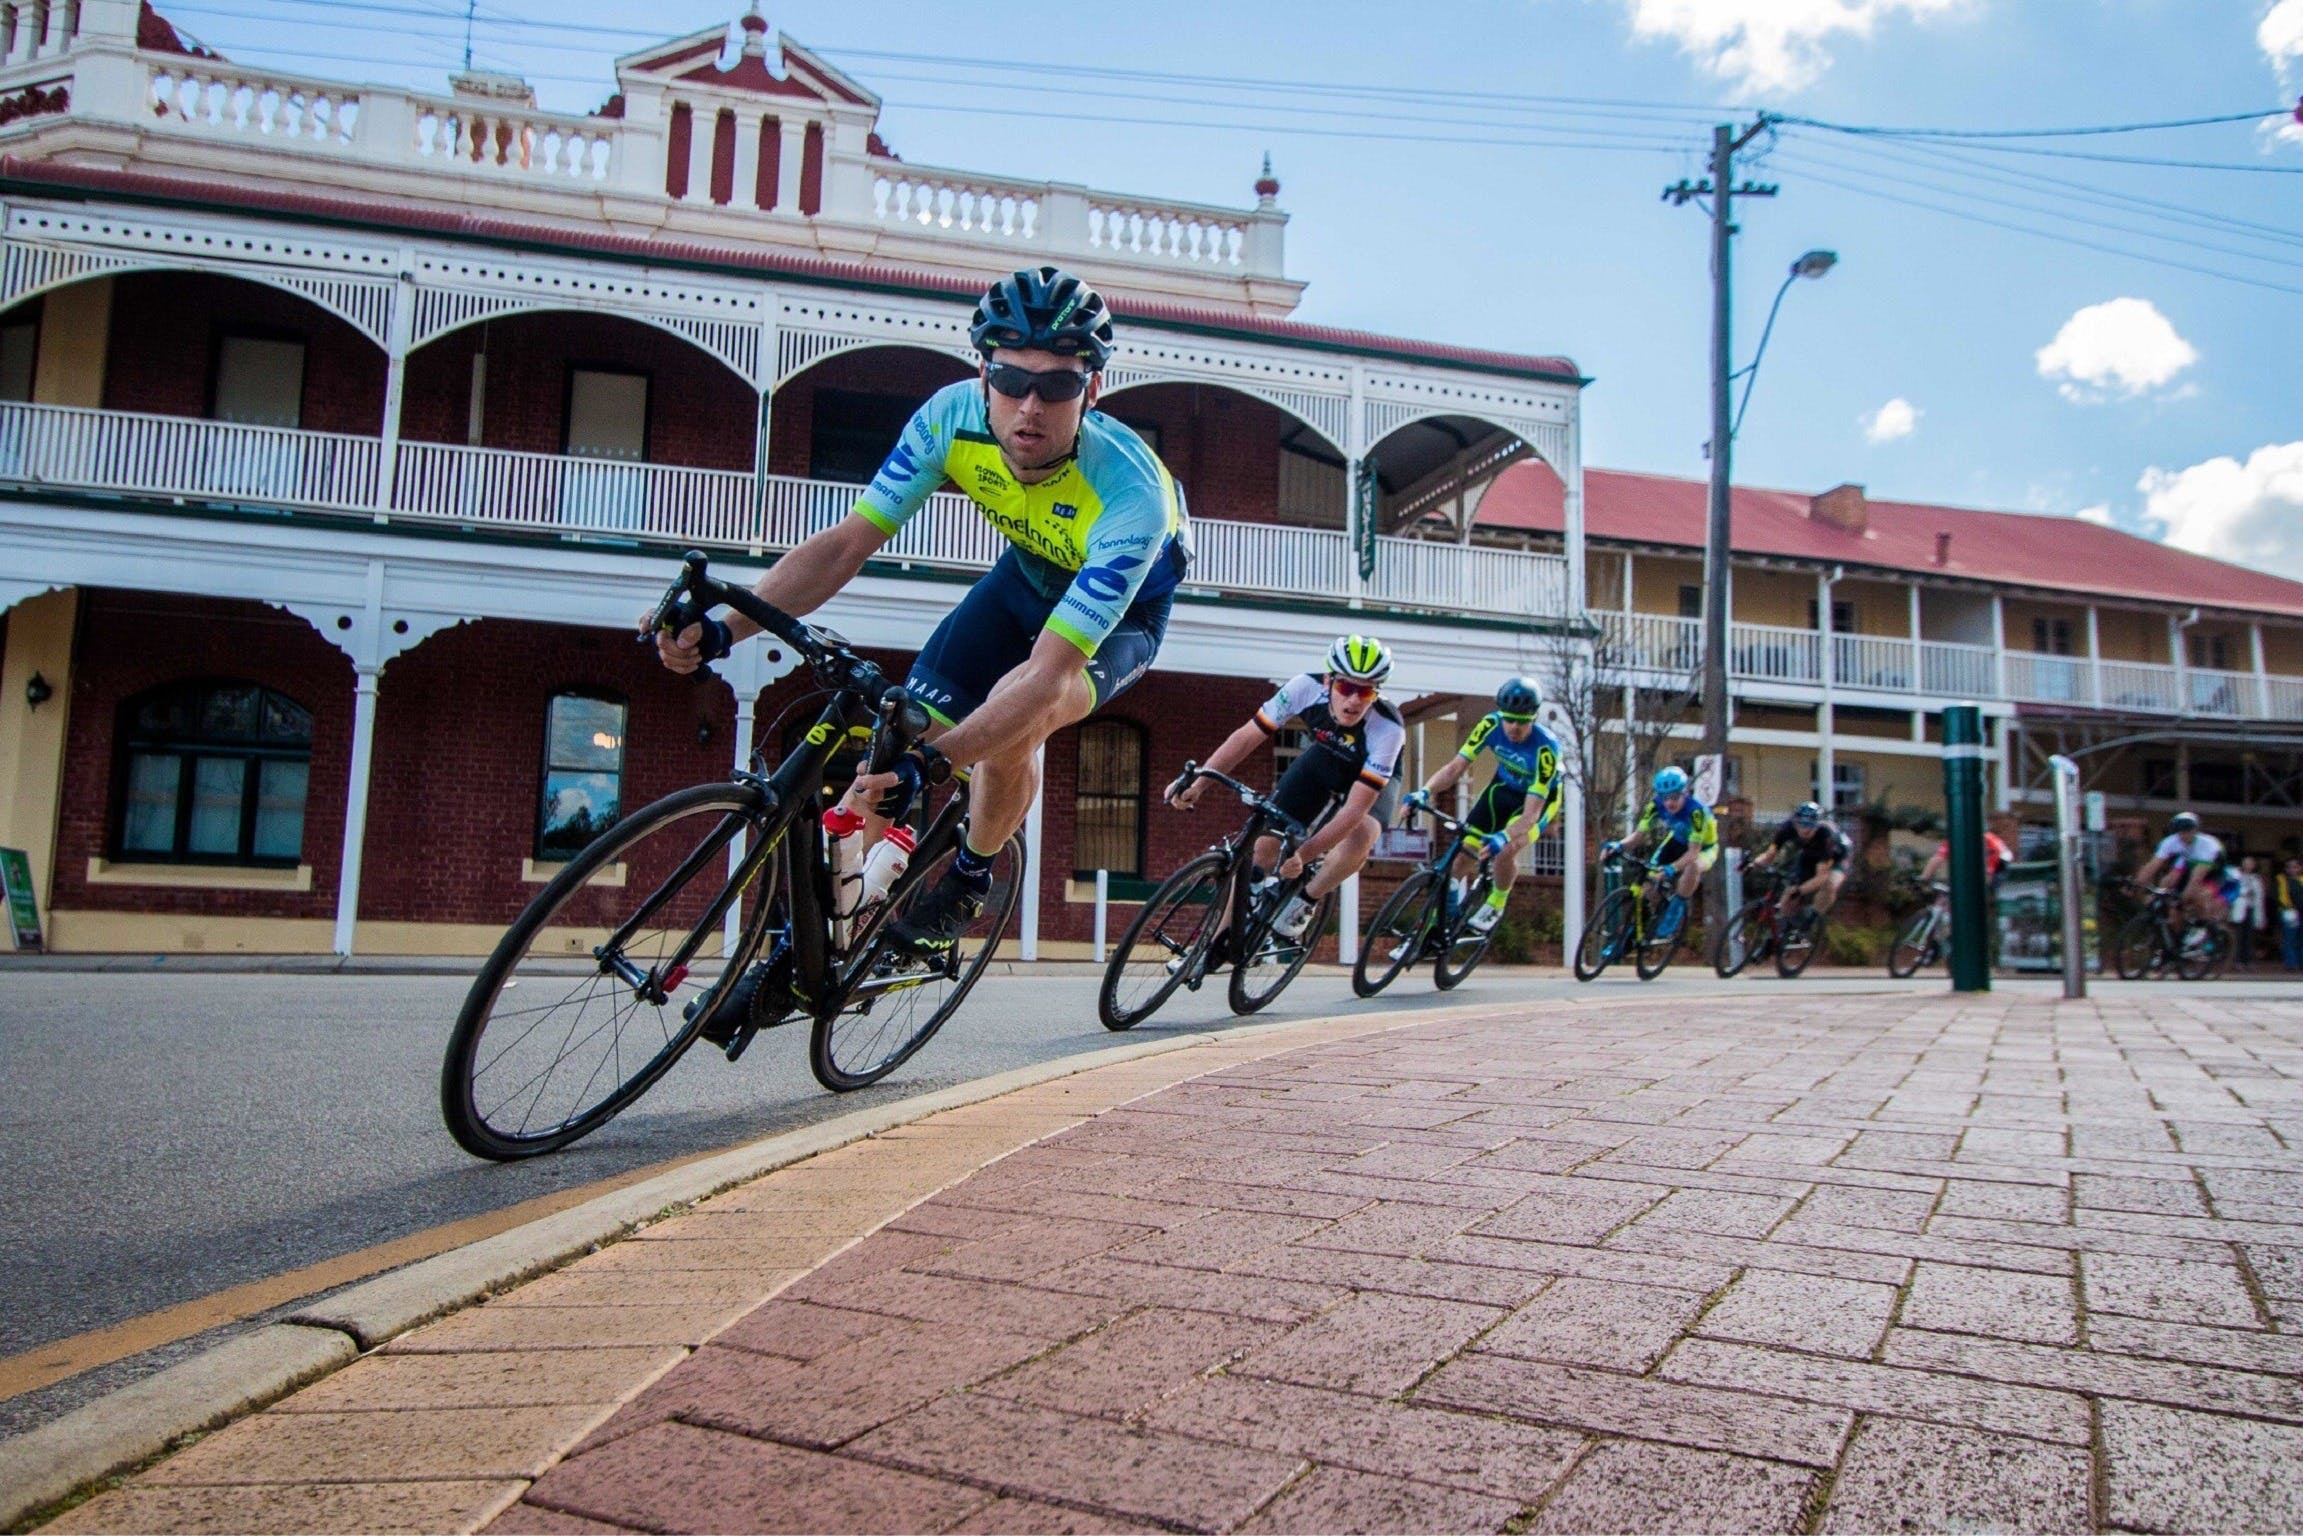 The West Side Story - Avon River Cycle Trail - Accommodation Perth